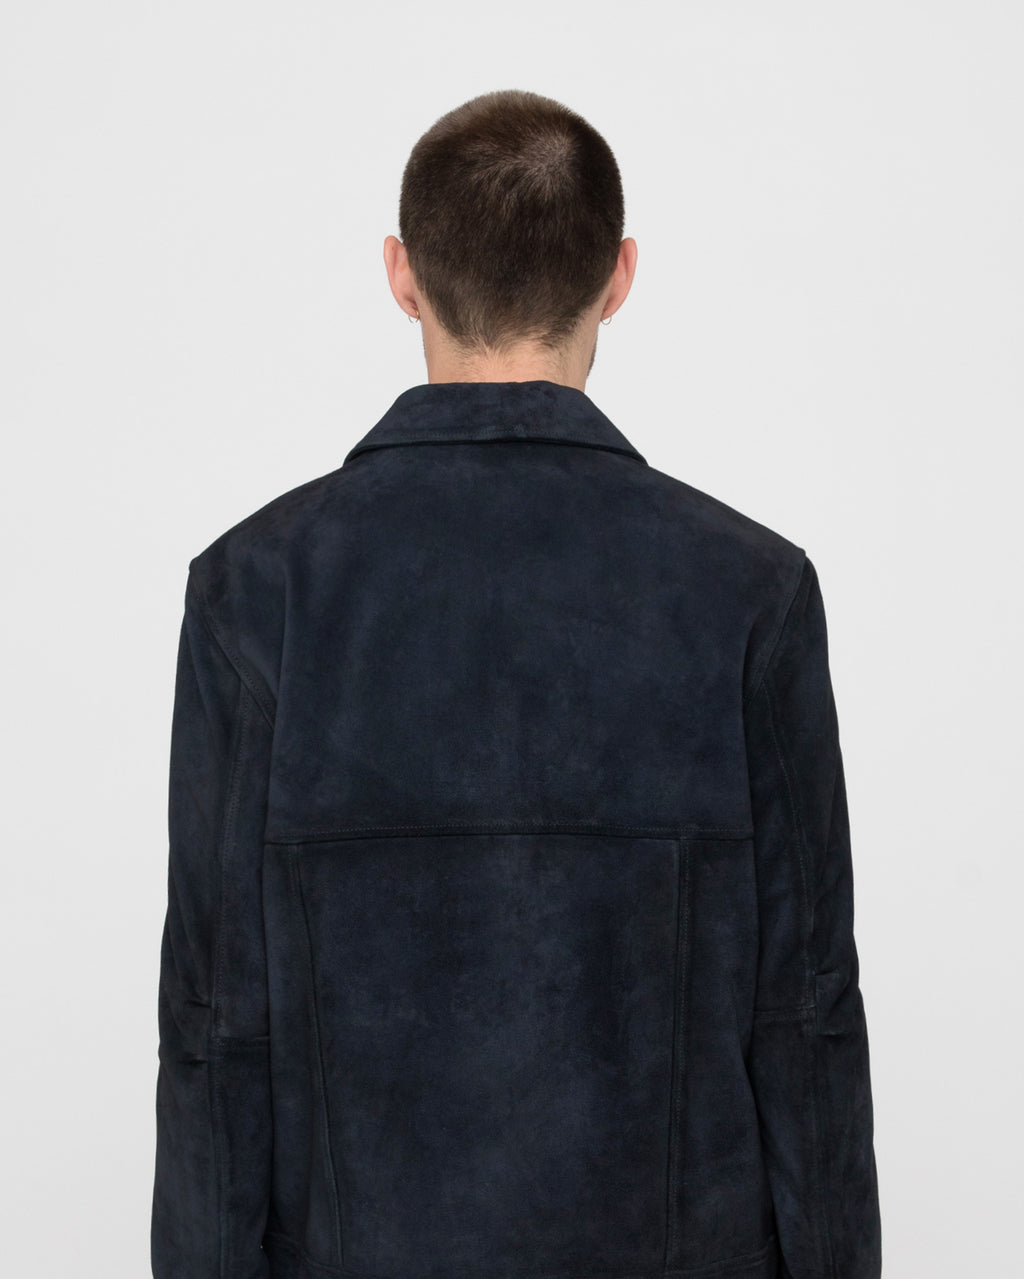 The Roswell Jacket in Navy